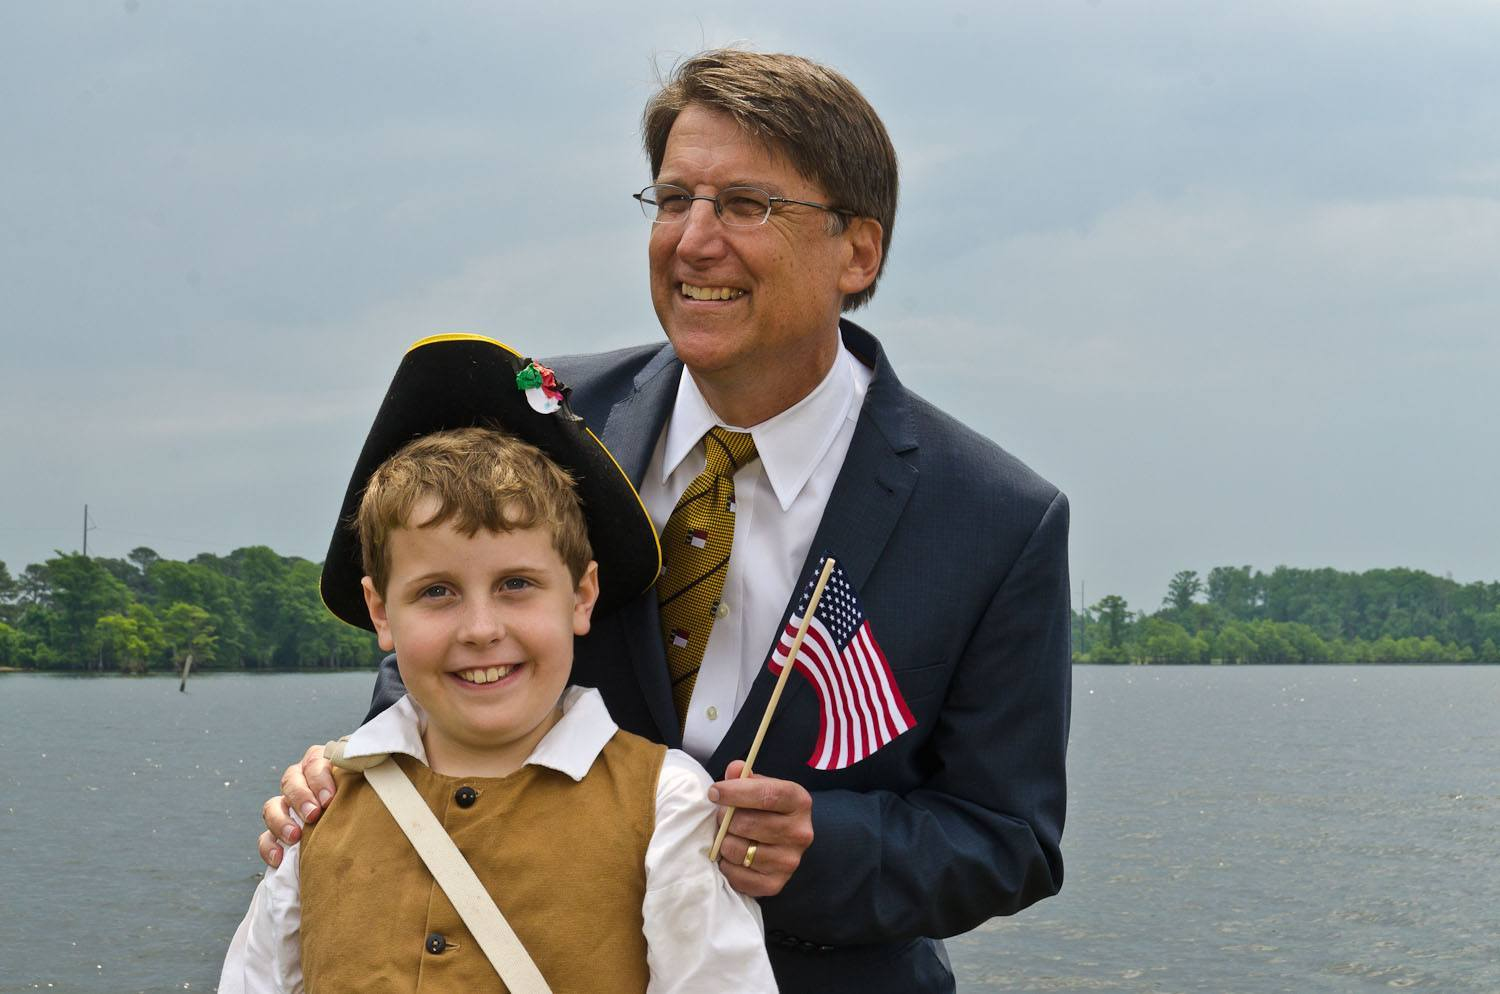 Gov McCrory with 'Gov Eden's' son